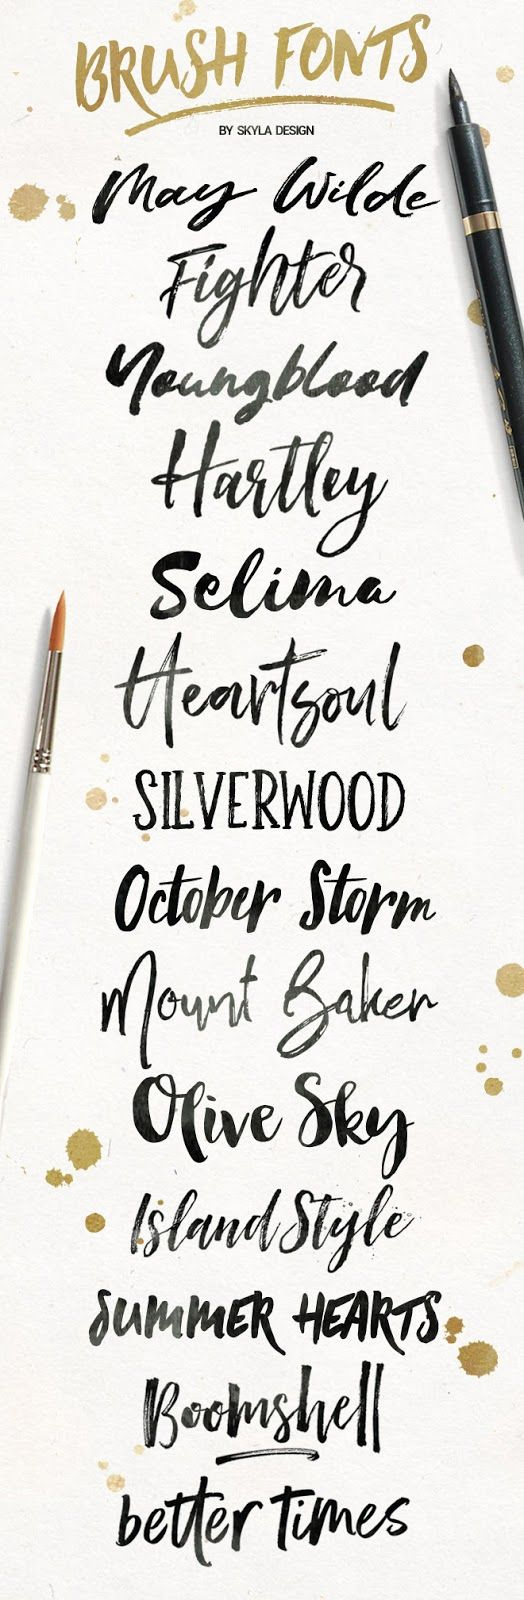 Free Cursive Handwriting Fonts Fresh 25 Best Ideas About Calligraphy On Pinterest